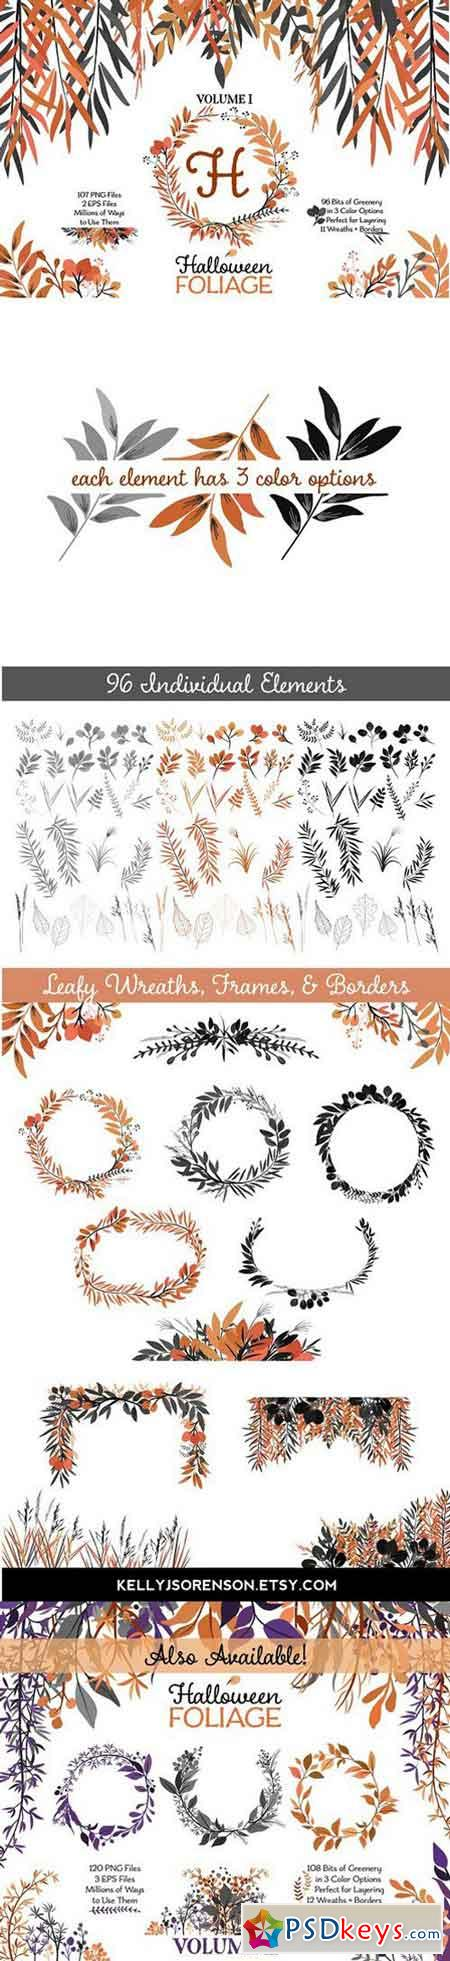 Halloween Leaves and Wreaths 1756509